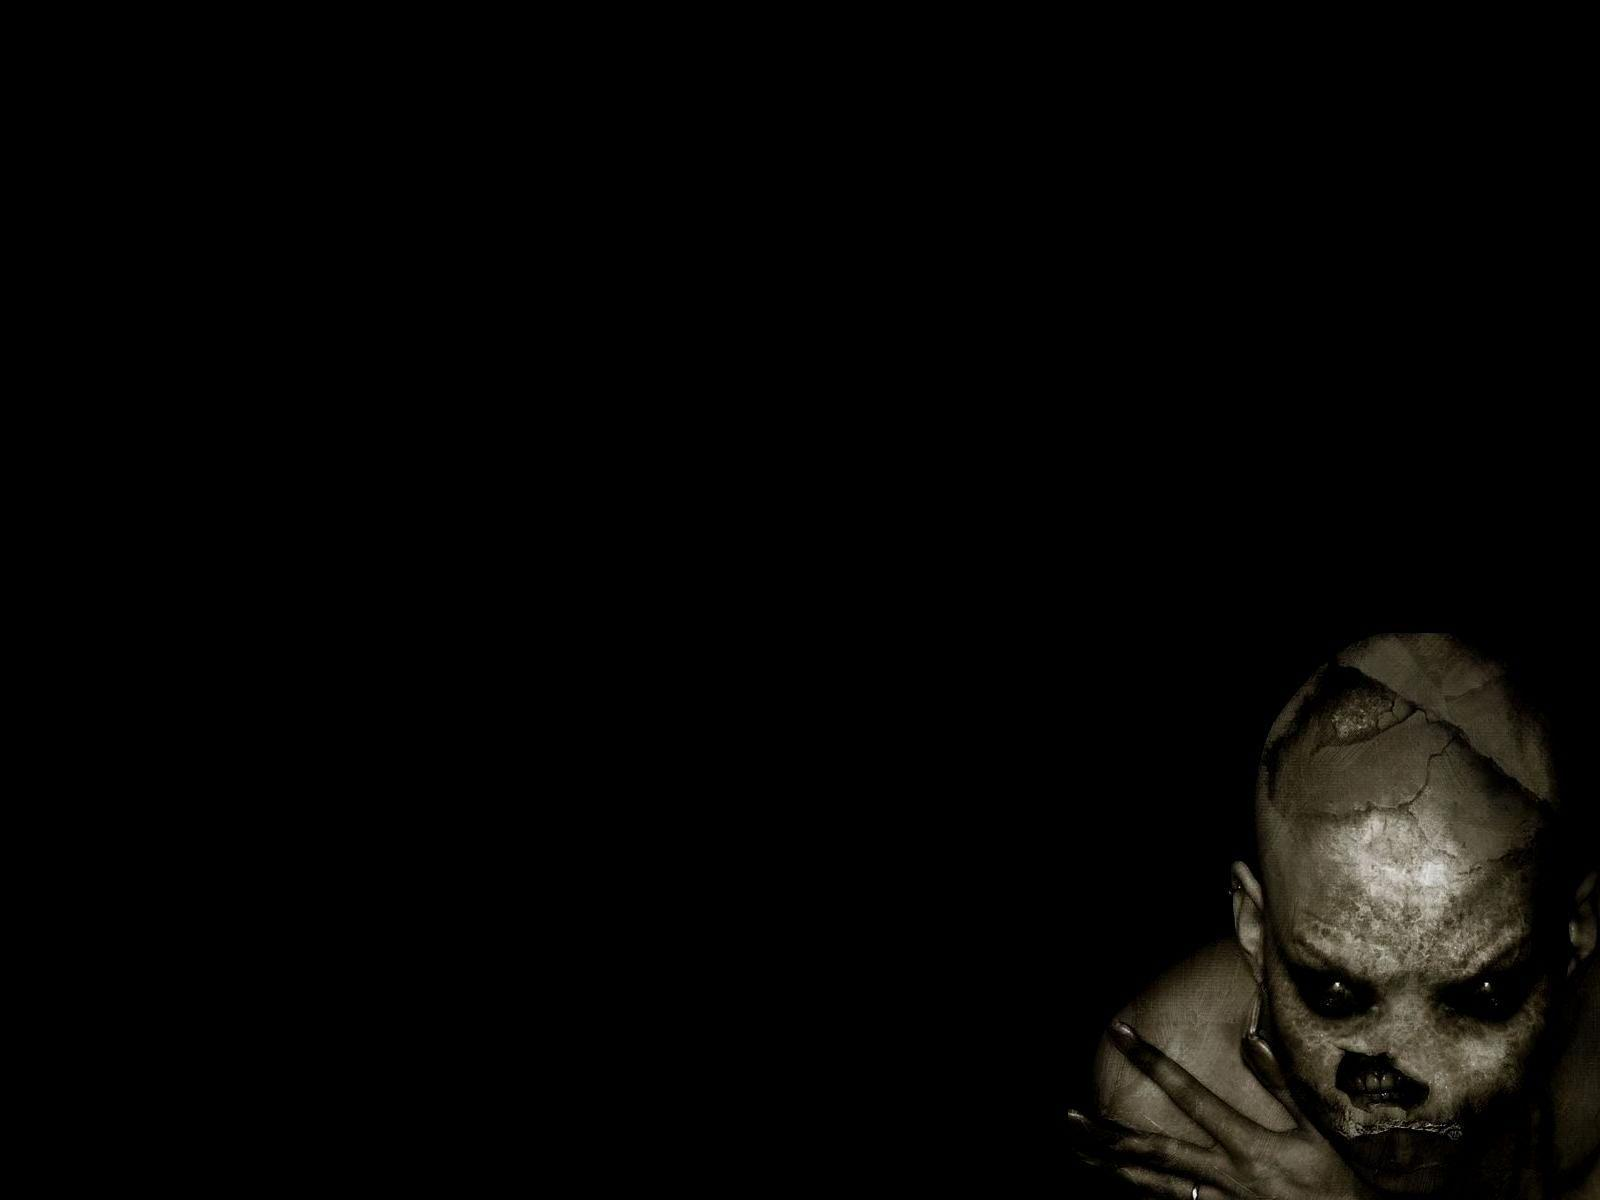 Dark Scary Wallpapers Wallpaper Cave